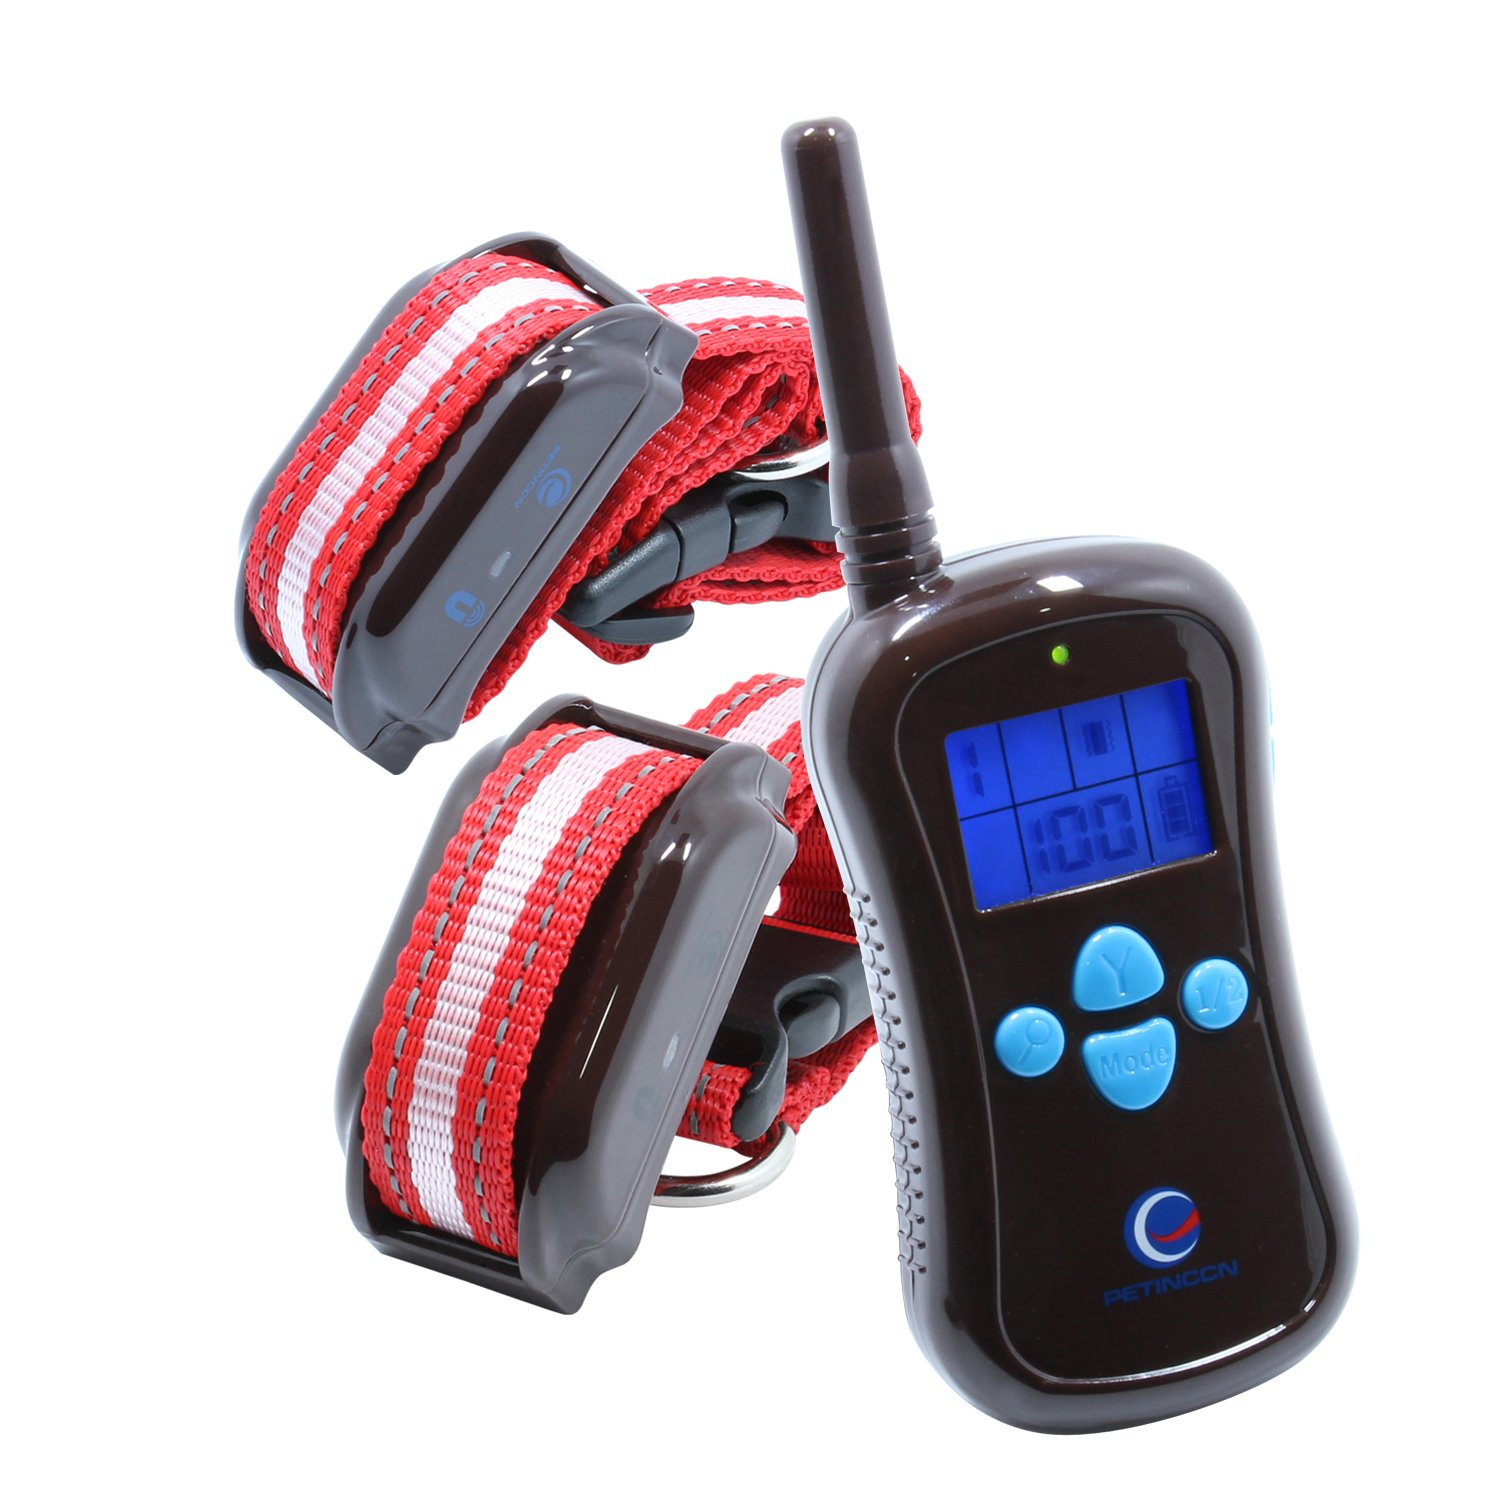 2 Receiver Remote Dog Training Collar Beep, Vibration Shock in 656 Yards Control Range, Rechargeable Waterproof Shock Collar Dogs, P680C-2